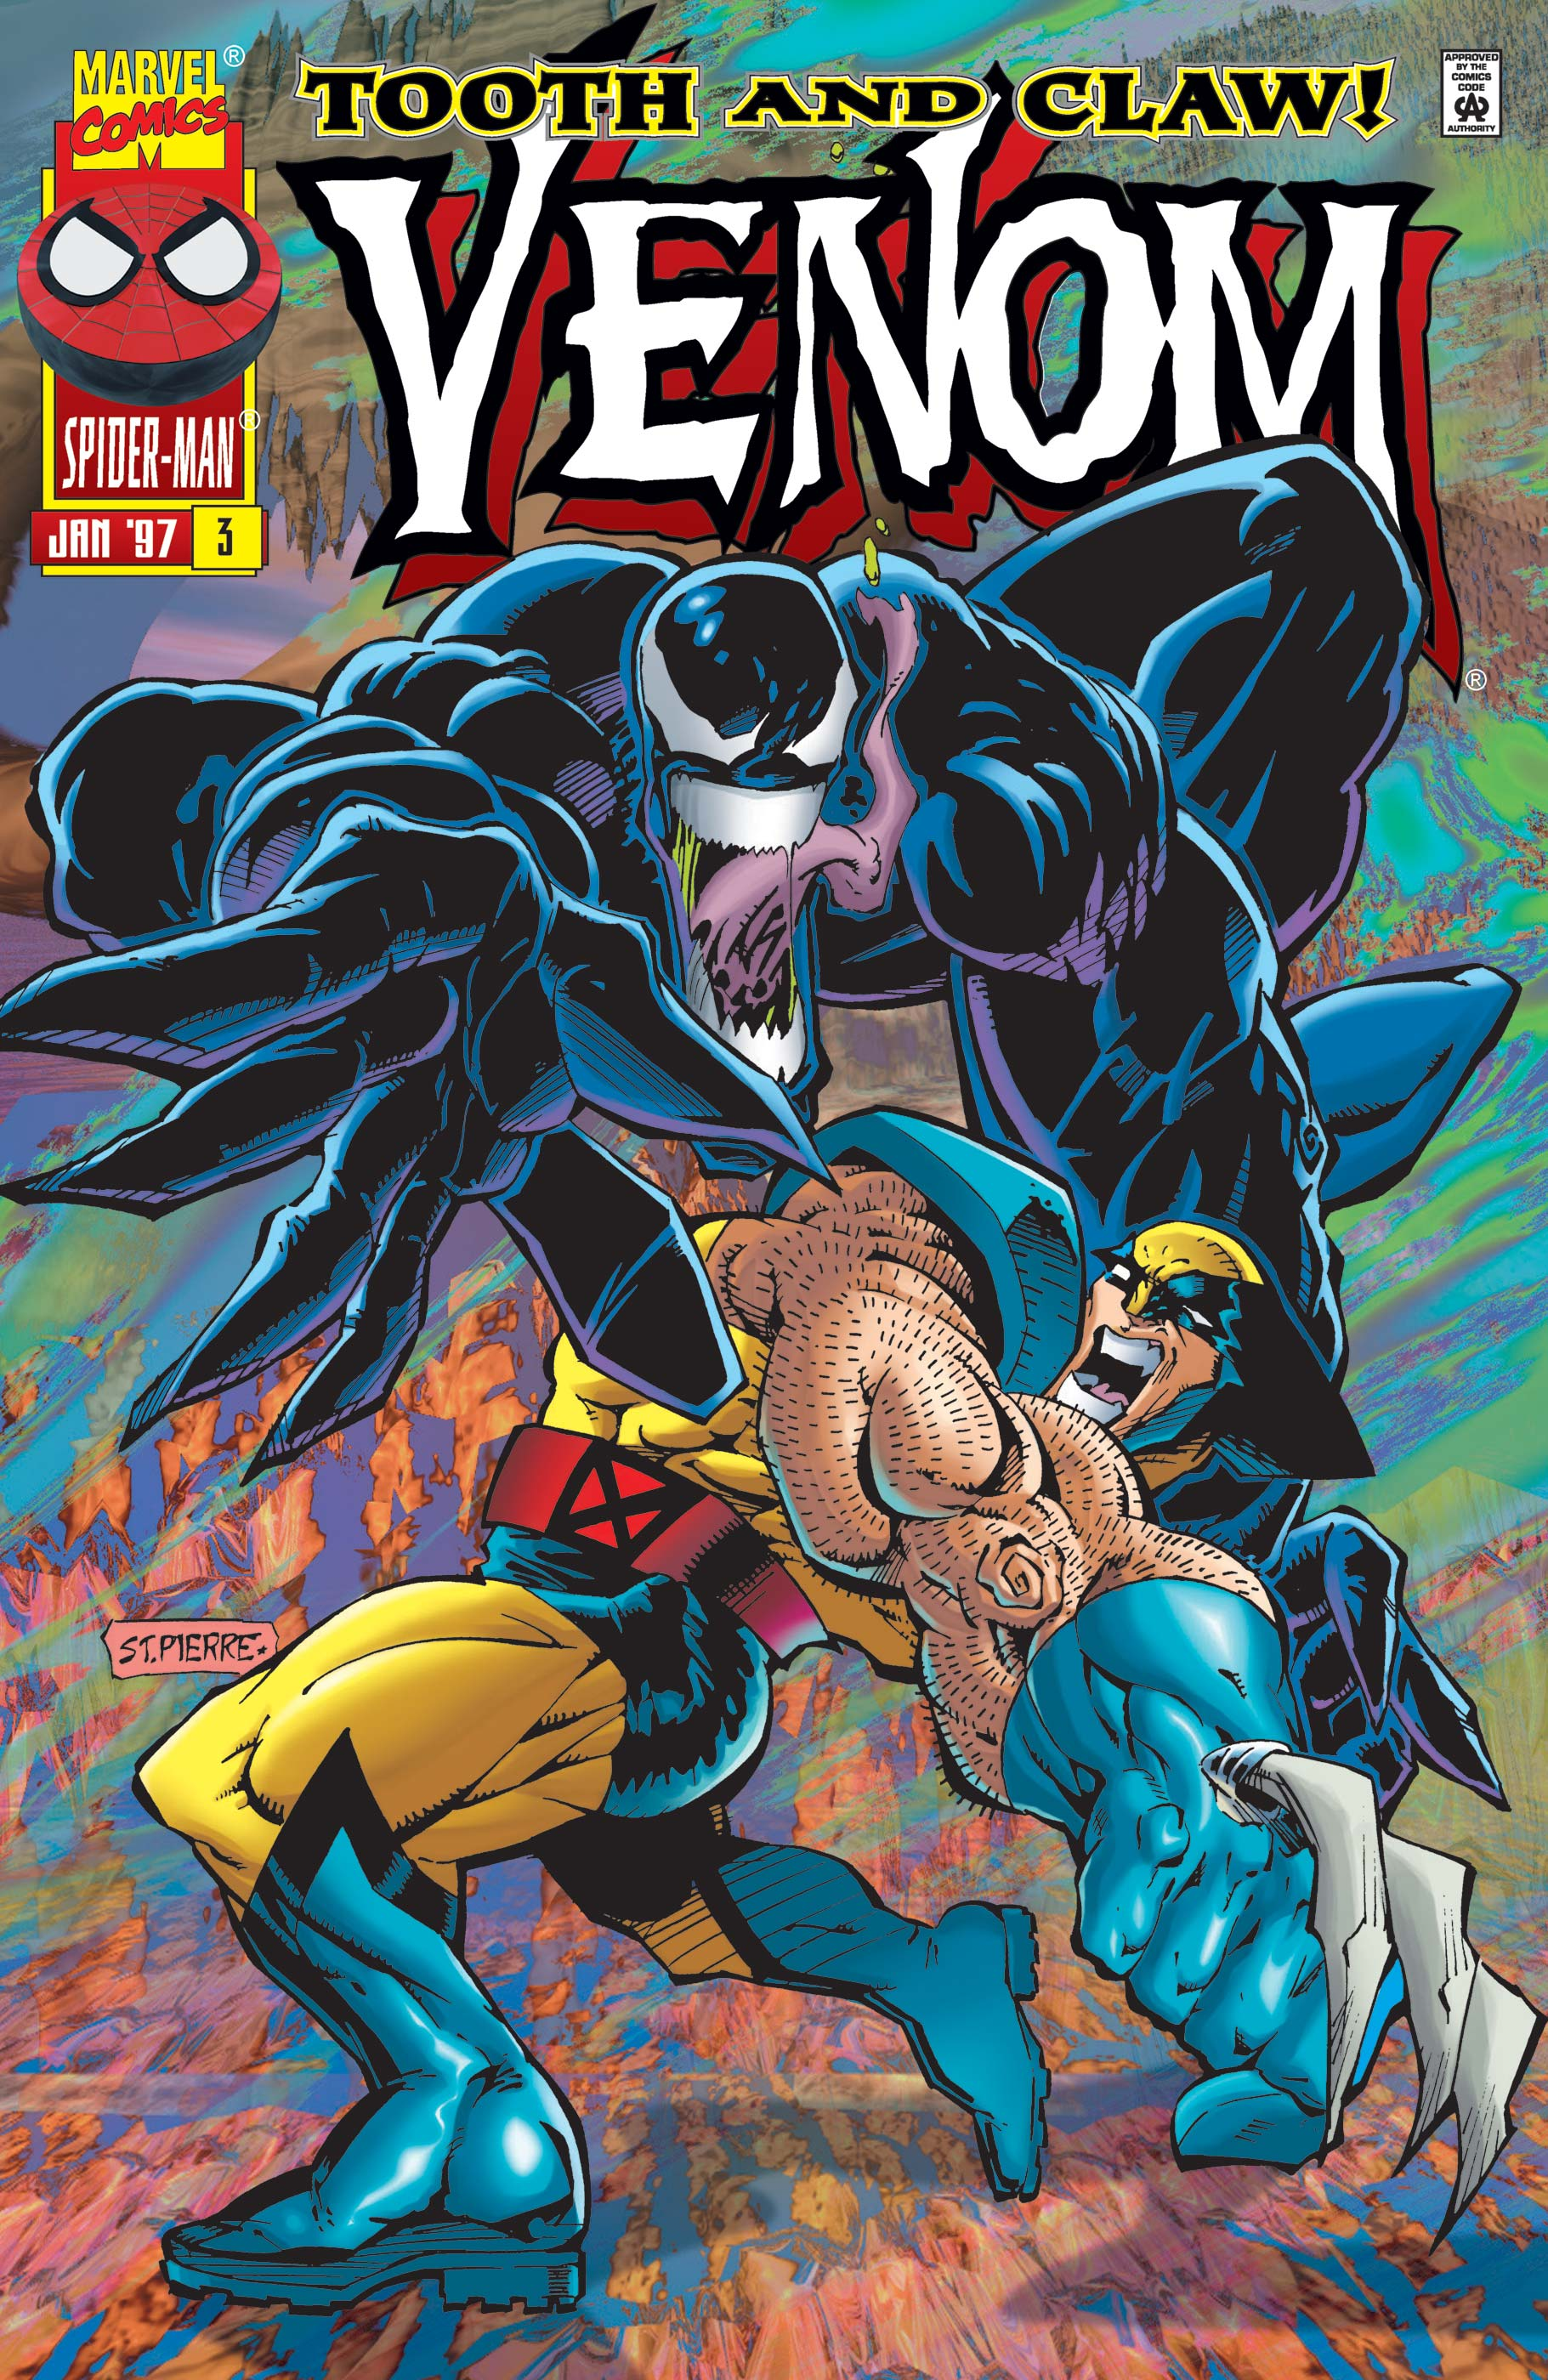 Venom: Tooth and Claw (1996) #3